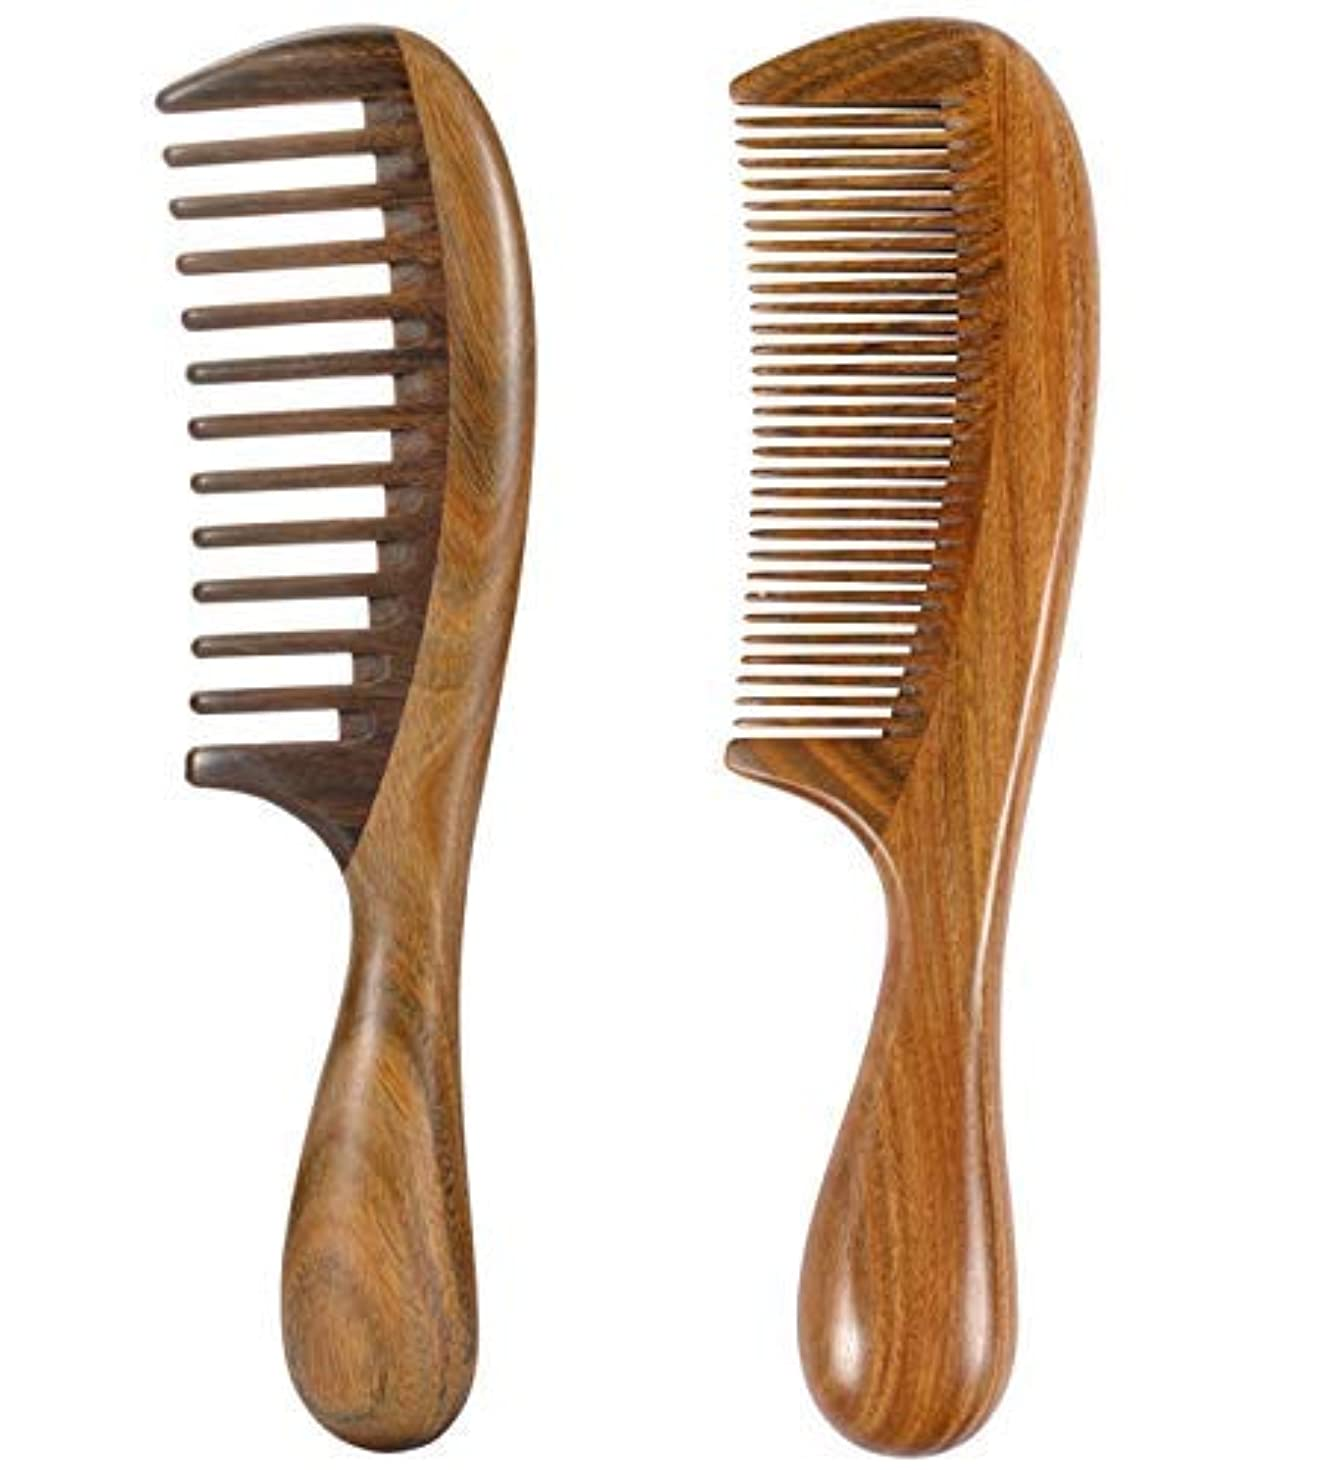 ルーチン高揚したパントリーiPang 2pcs Wooden Hair Comb Wide Tooth Comb and Find Tooth Comb Detangling Sandalwood Comb [並行輸入品]